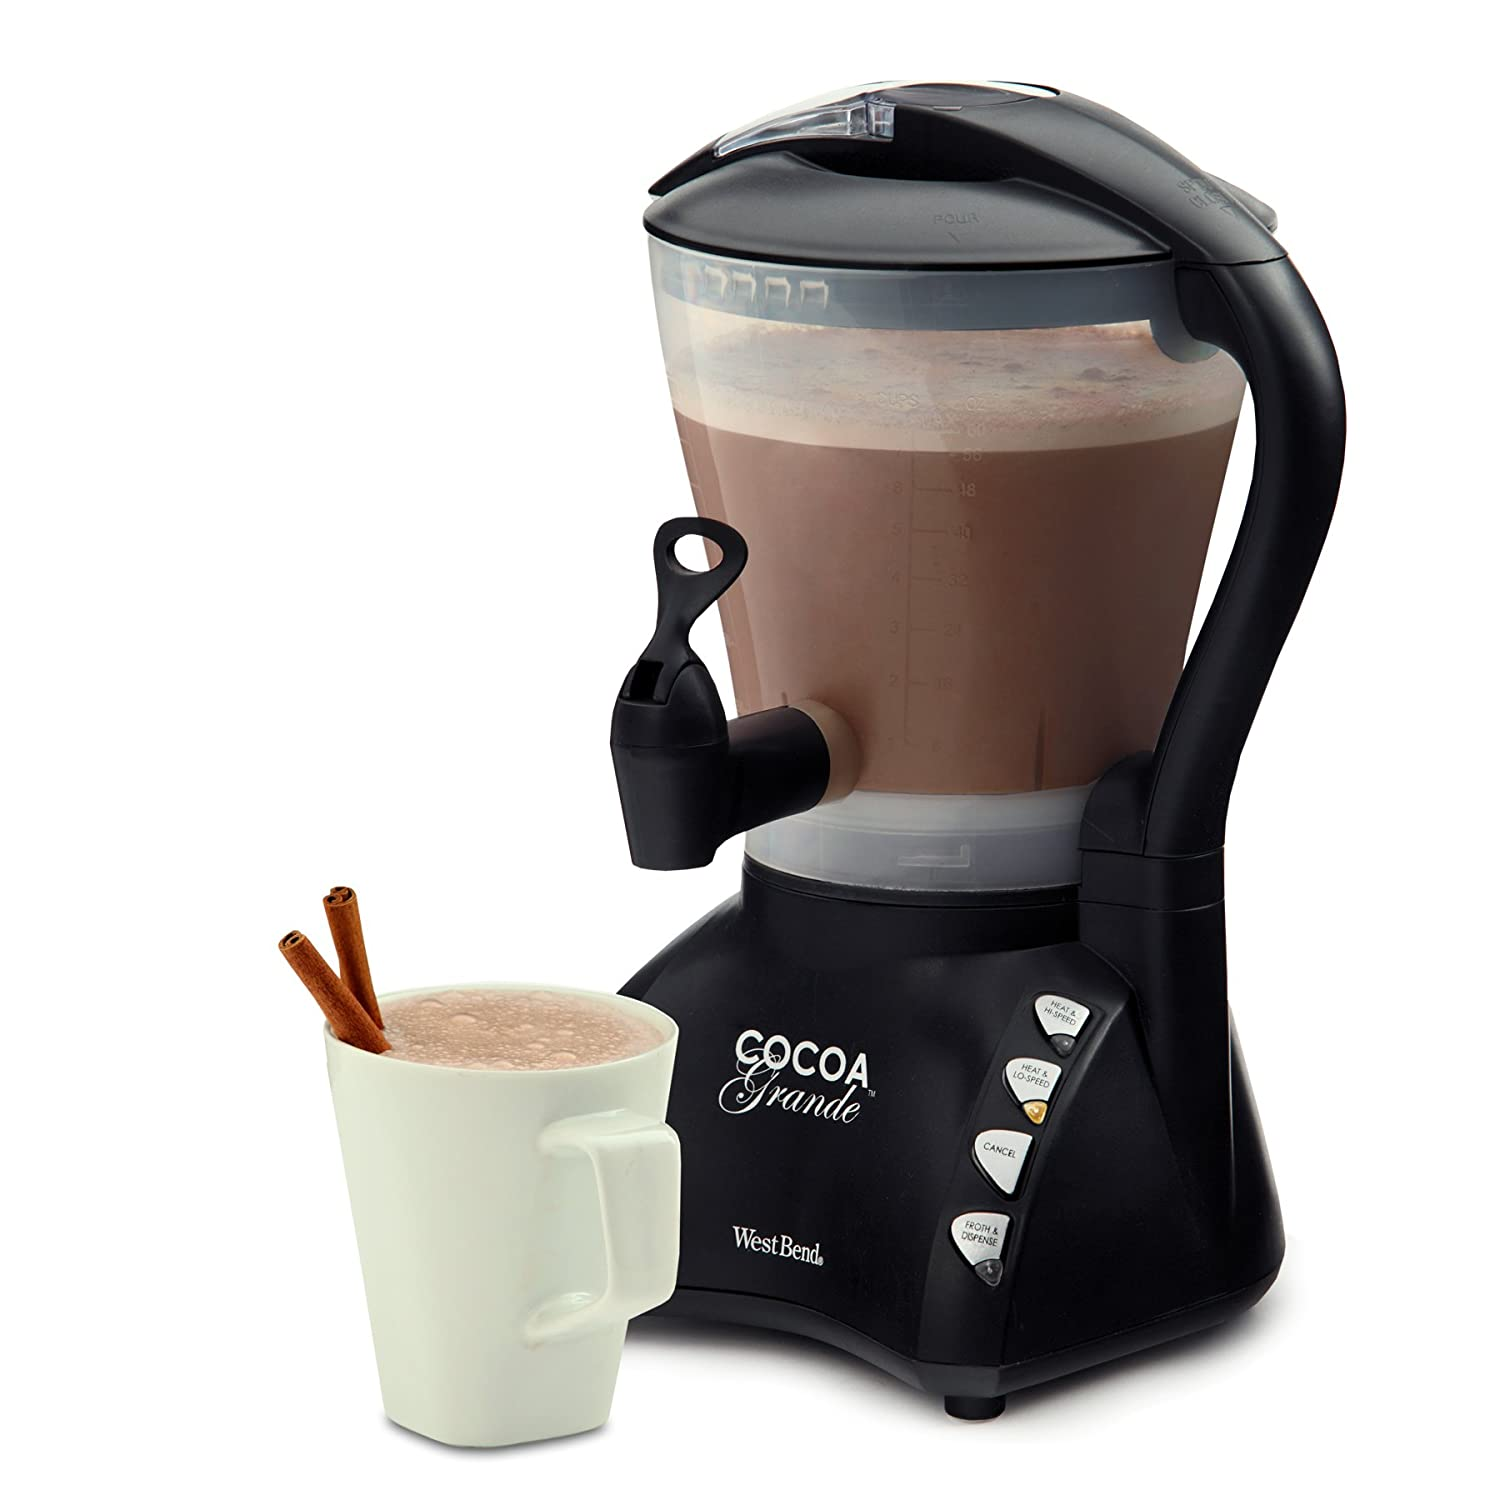 Amazon.com: West Bend CL400BG Cocoa Grande Drink Maker with ...